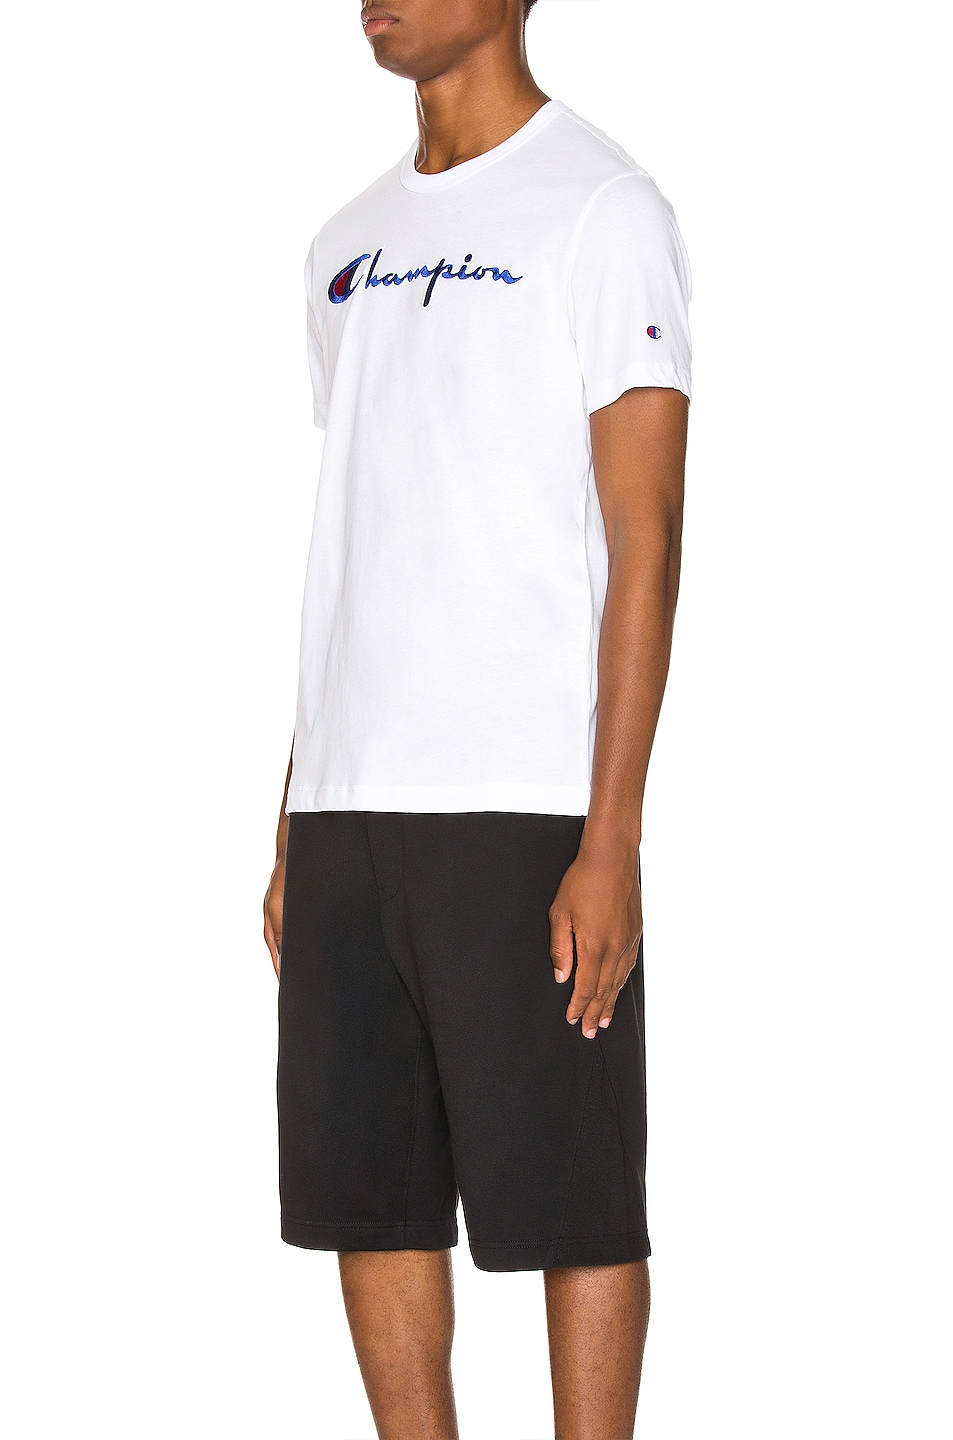 Image 3 of Champion Reverse Weave Big Script Tee in White